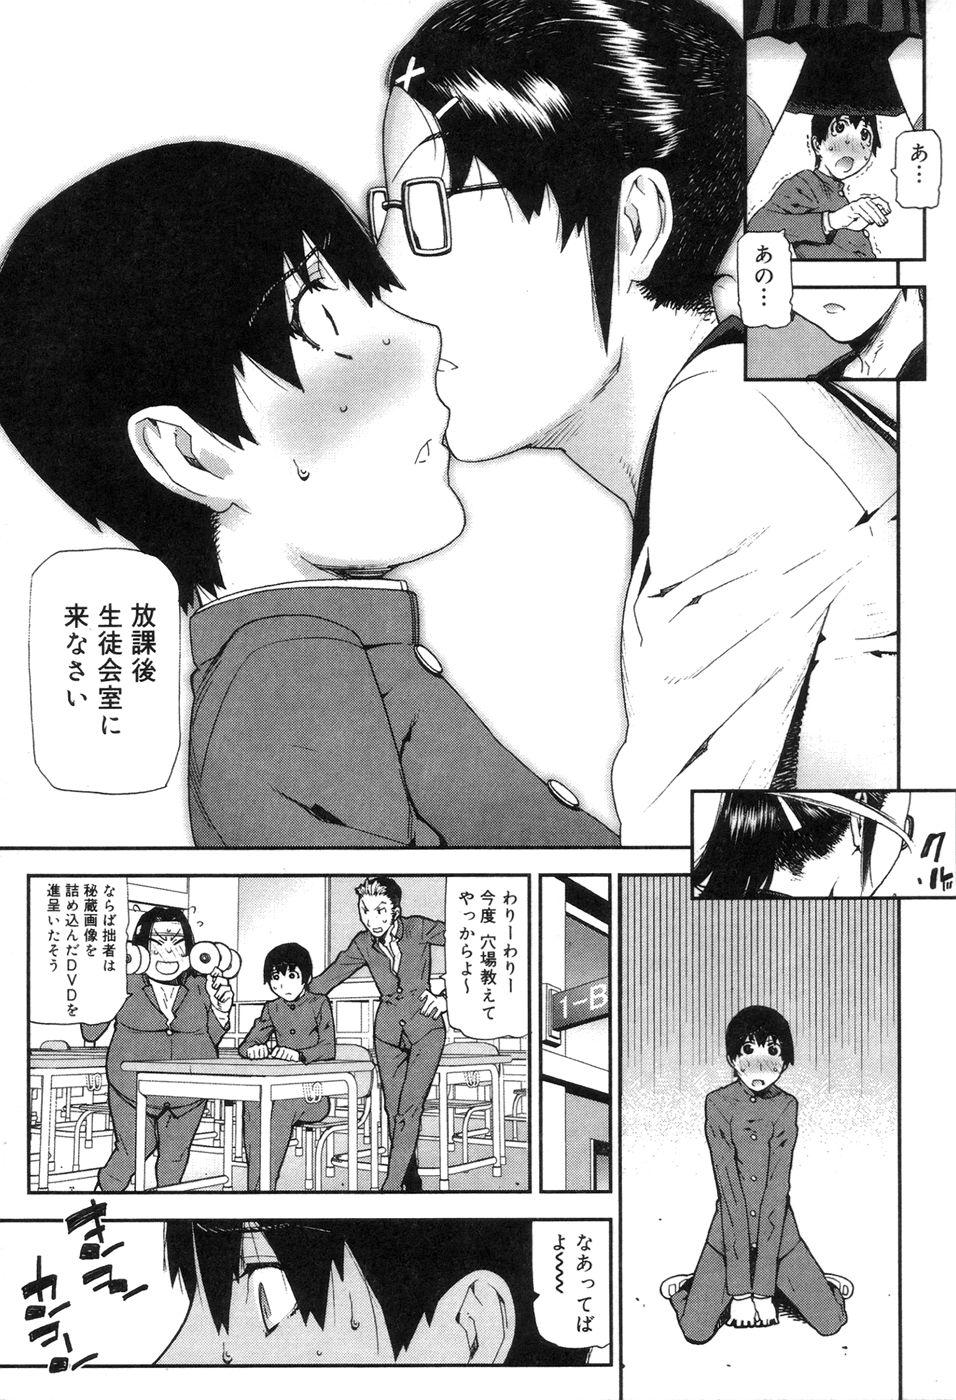 Onee-chan to issho 178